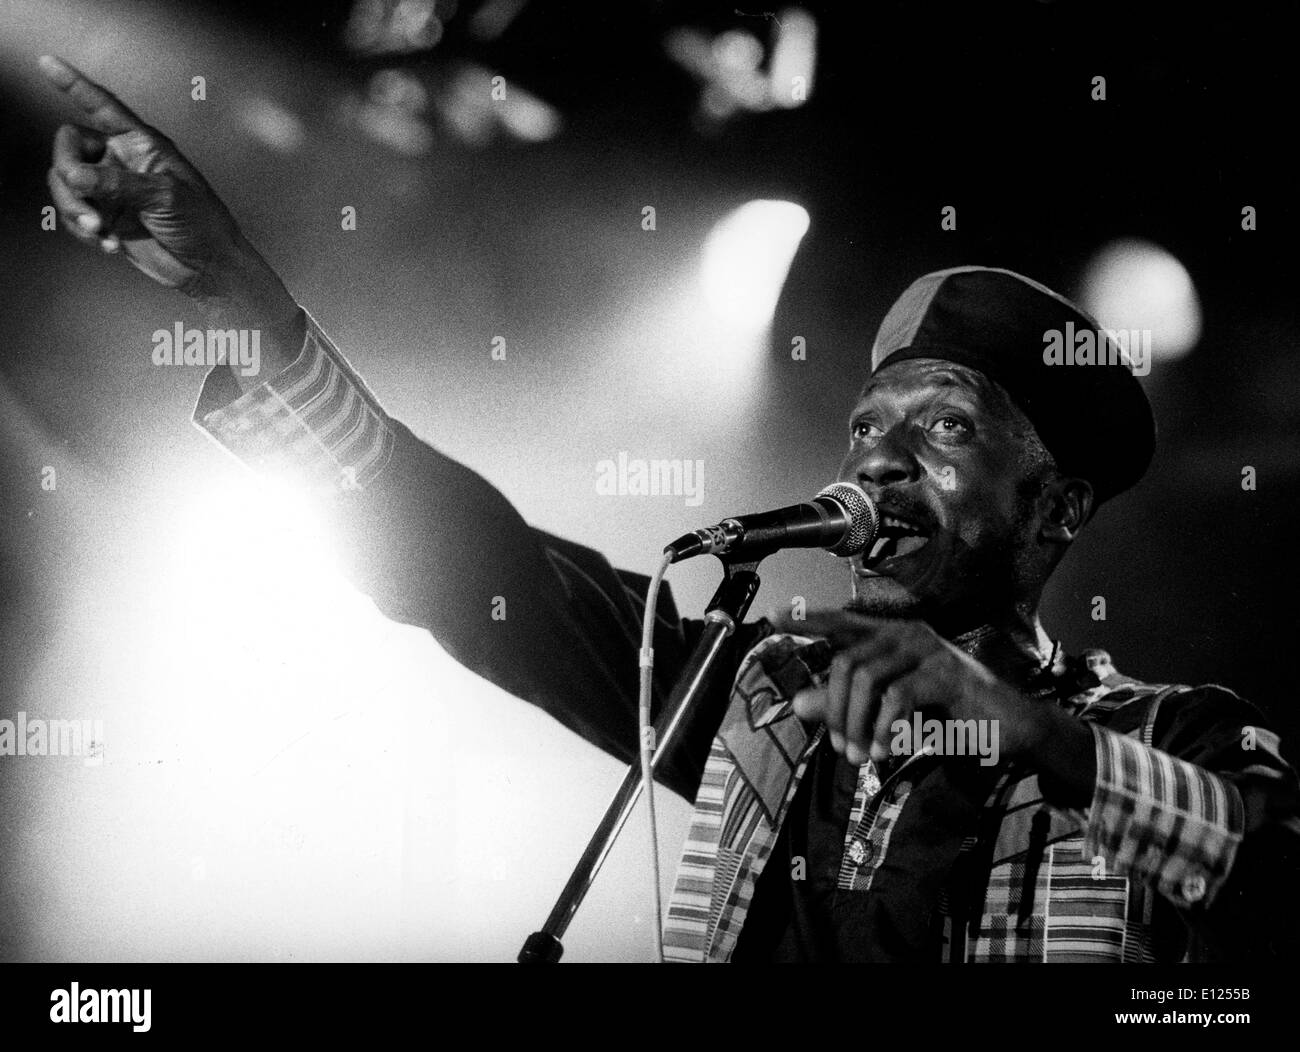 Jamaican reggae musician, JIMMY CLIFF performing at the Montreux Jazz Festival - Stock Image